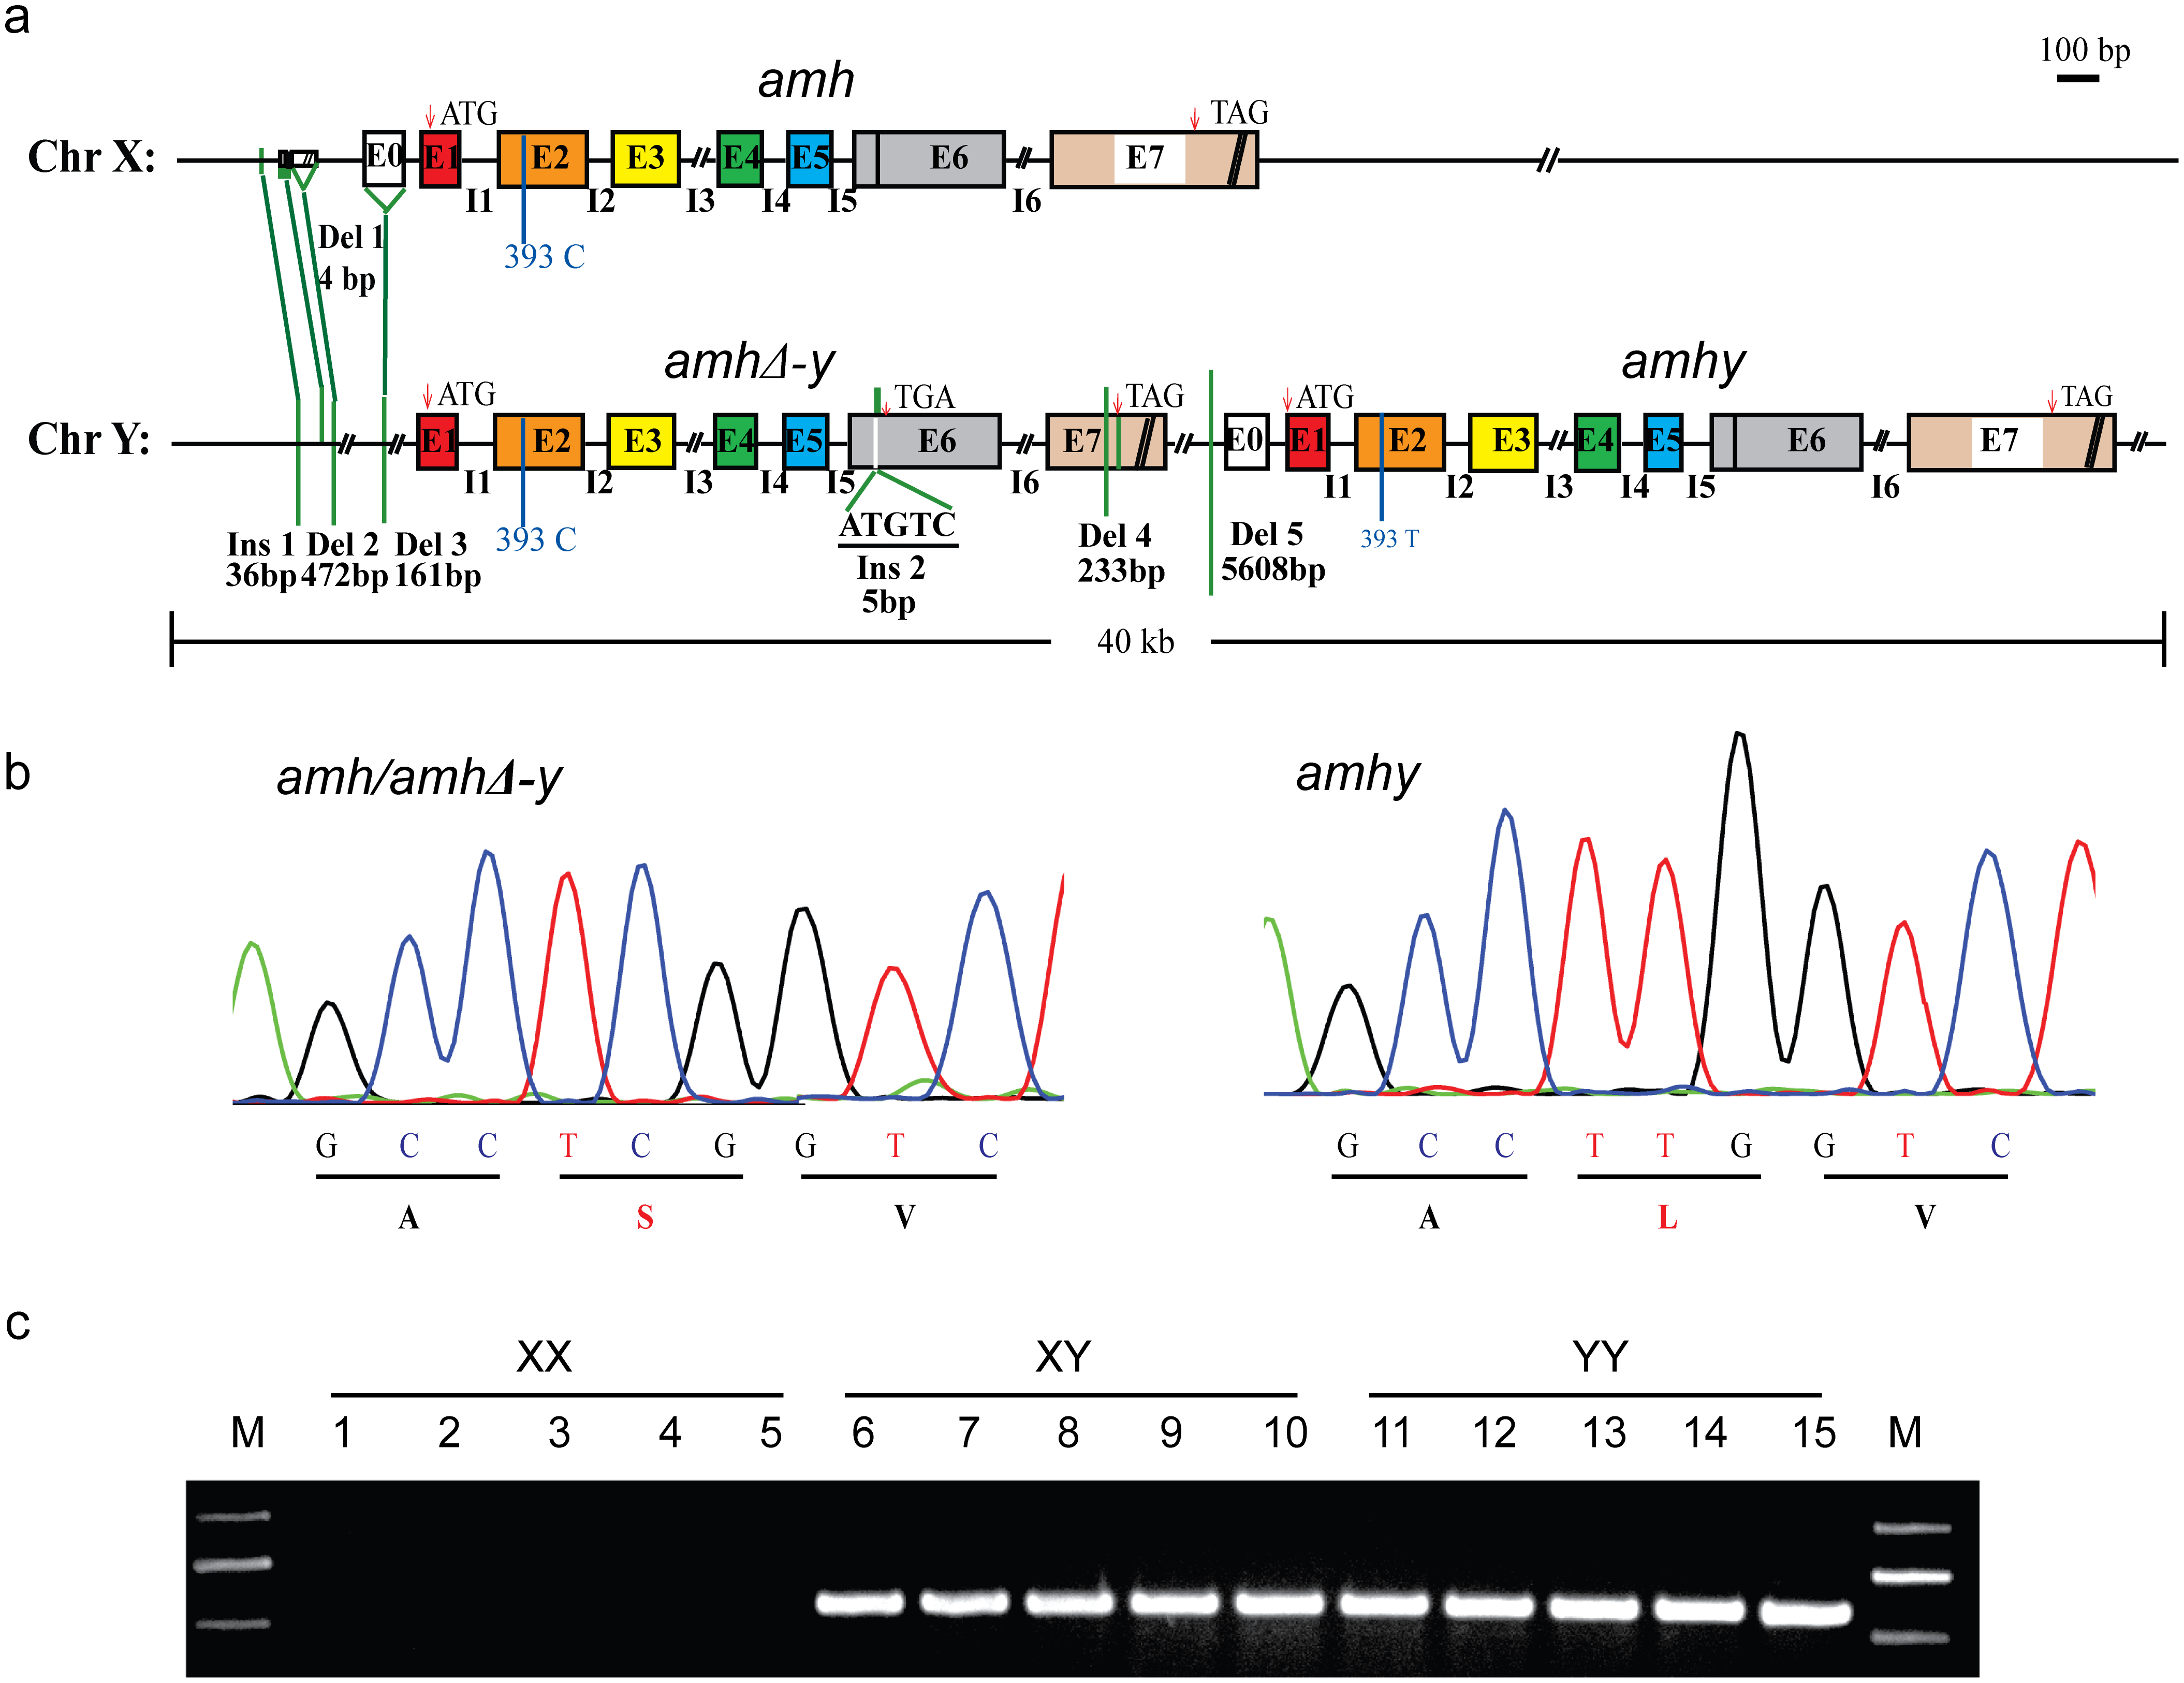 Schematic representation of <i>amh/amhΔ-y/amhy</i> gene structure on the Y and X chromosome.